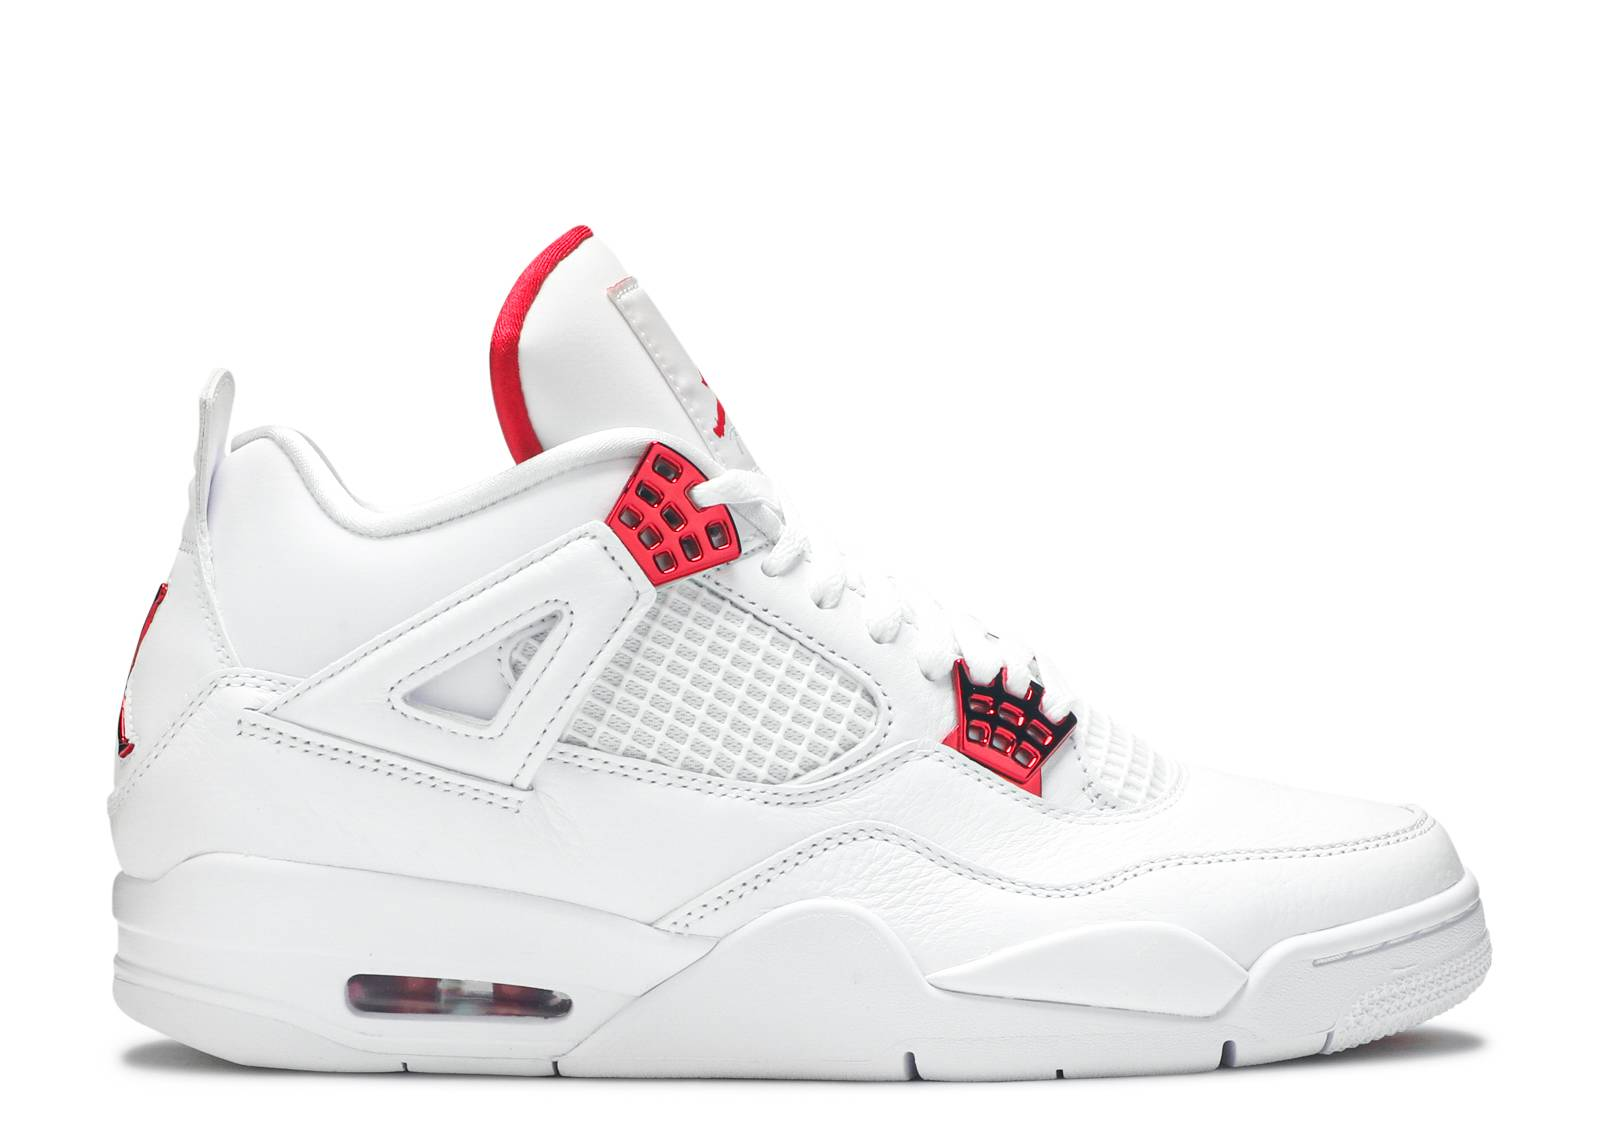 más desmayarse mármol  Air Jordan 4 Sneakers | Flight Club